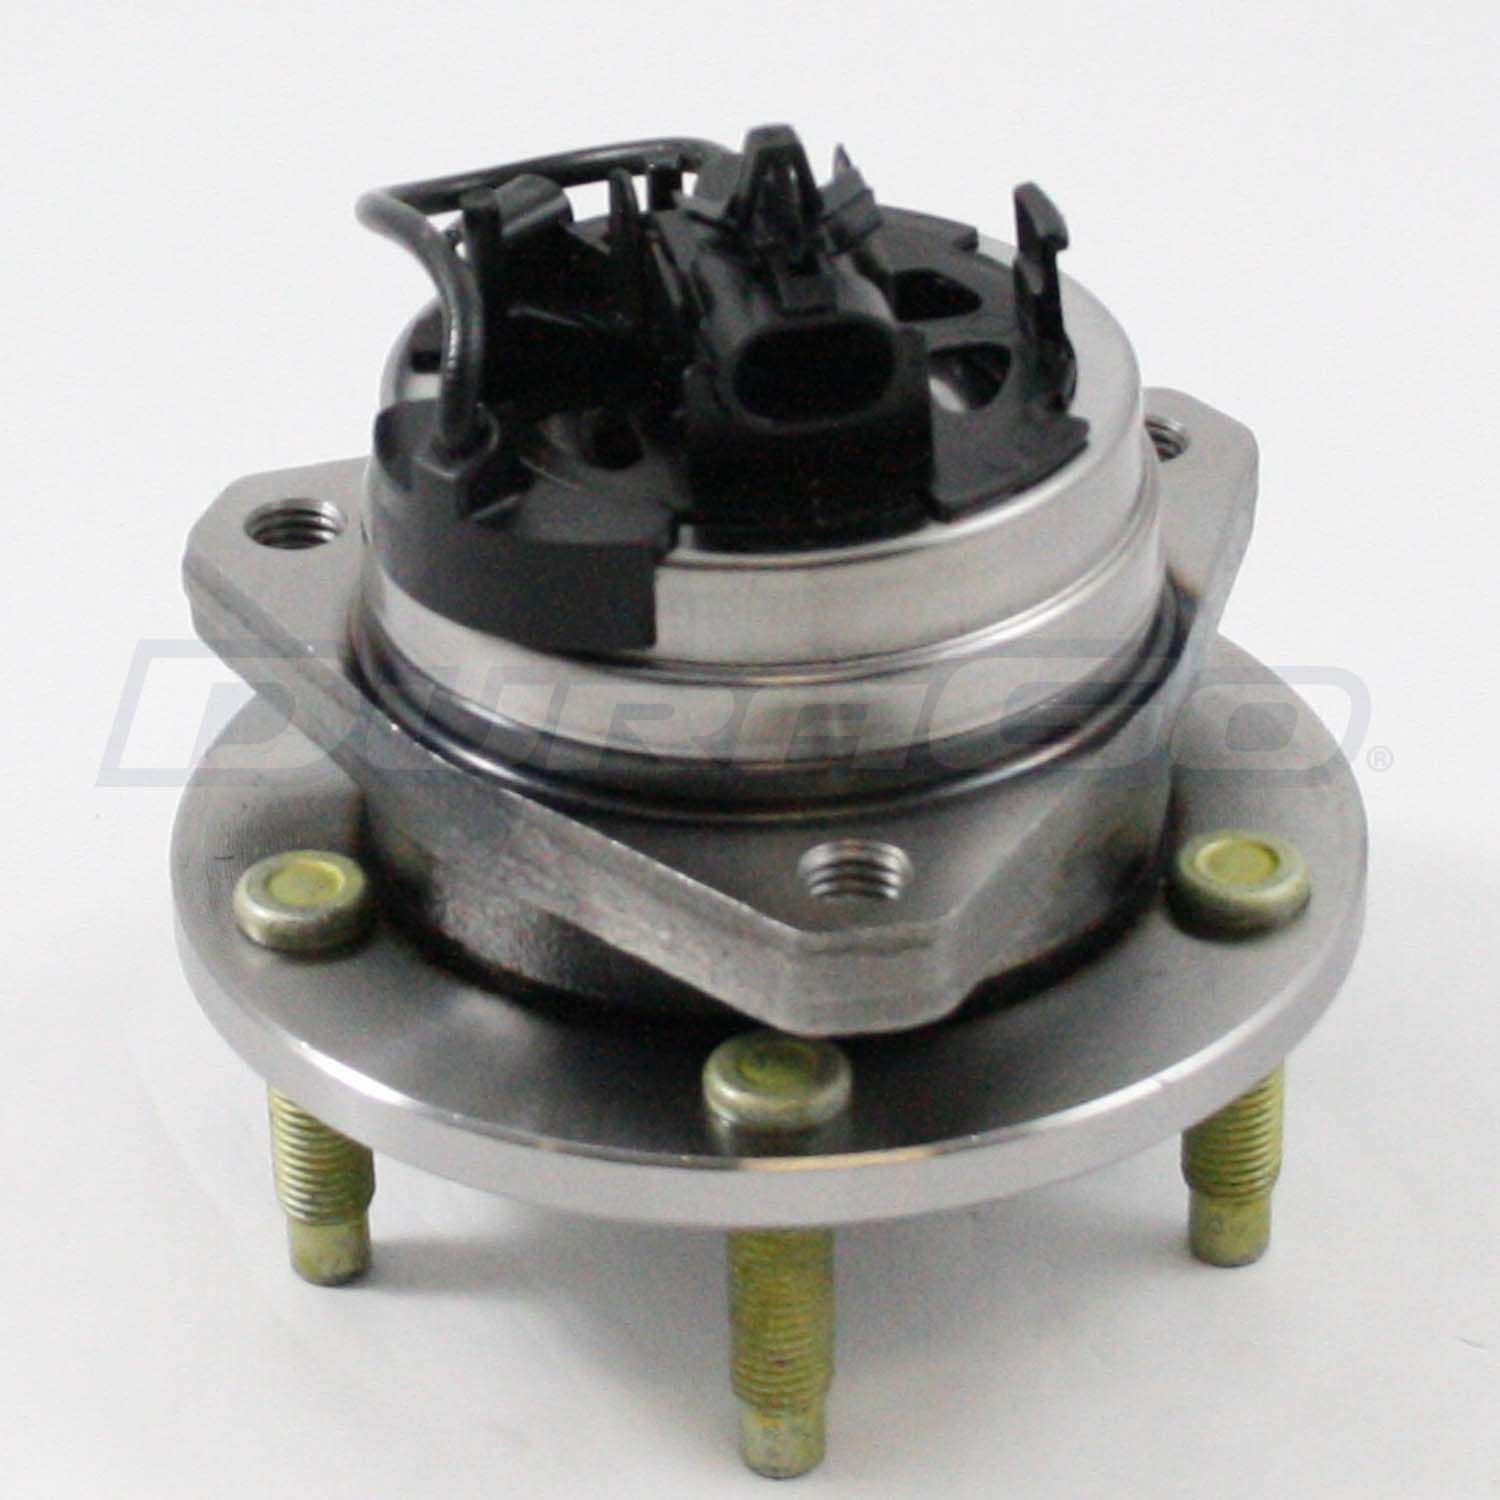 DURAGO - Axle Bearing and Hub Assembly - D48 295-13214